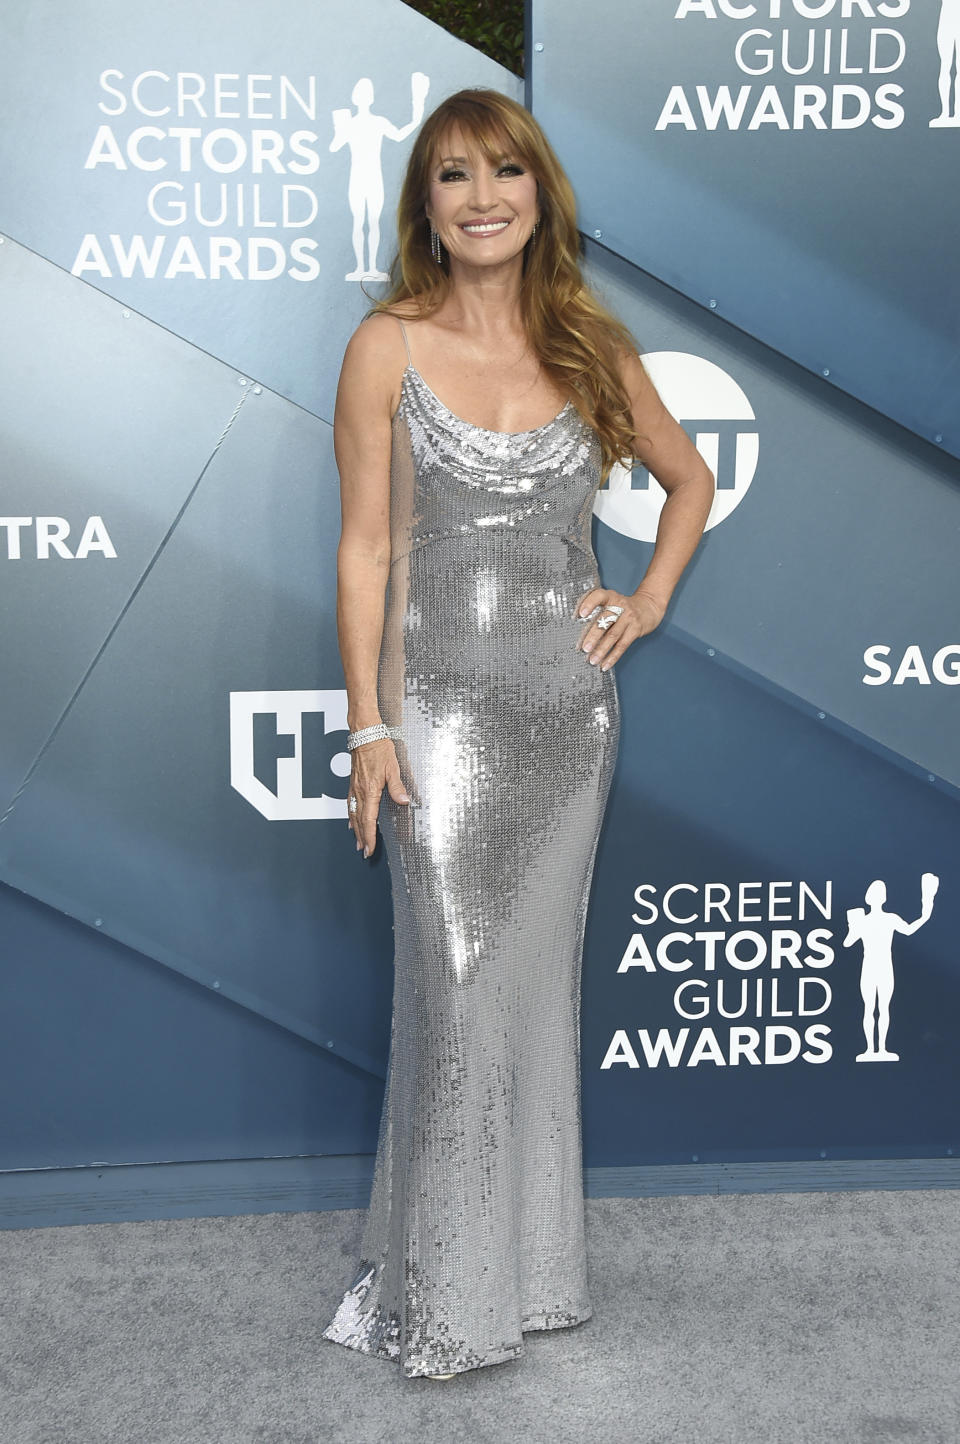 Jane Seymour arrives at the 26th annual Screen Actors Guild Awards at the Shrine Auditorium & Expo Hall on Sunday, Jan. 19, 2020, in Los Angeles. (Photo by Jordan Strauss/Invision/AP)